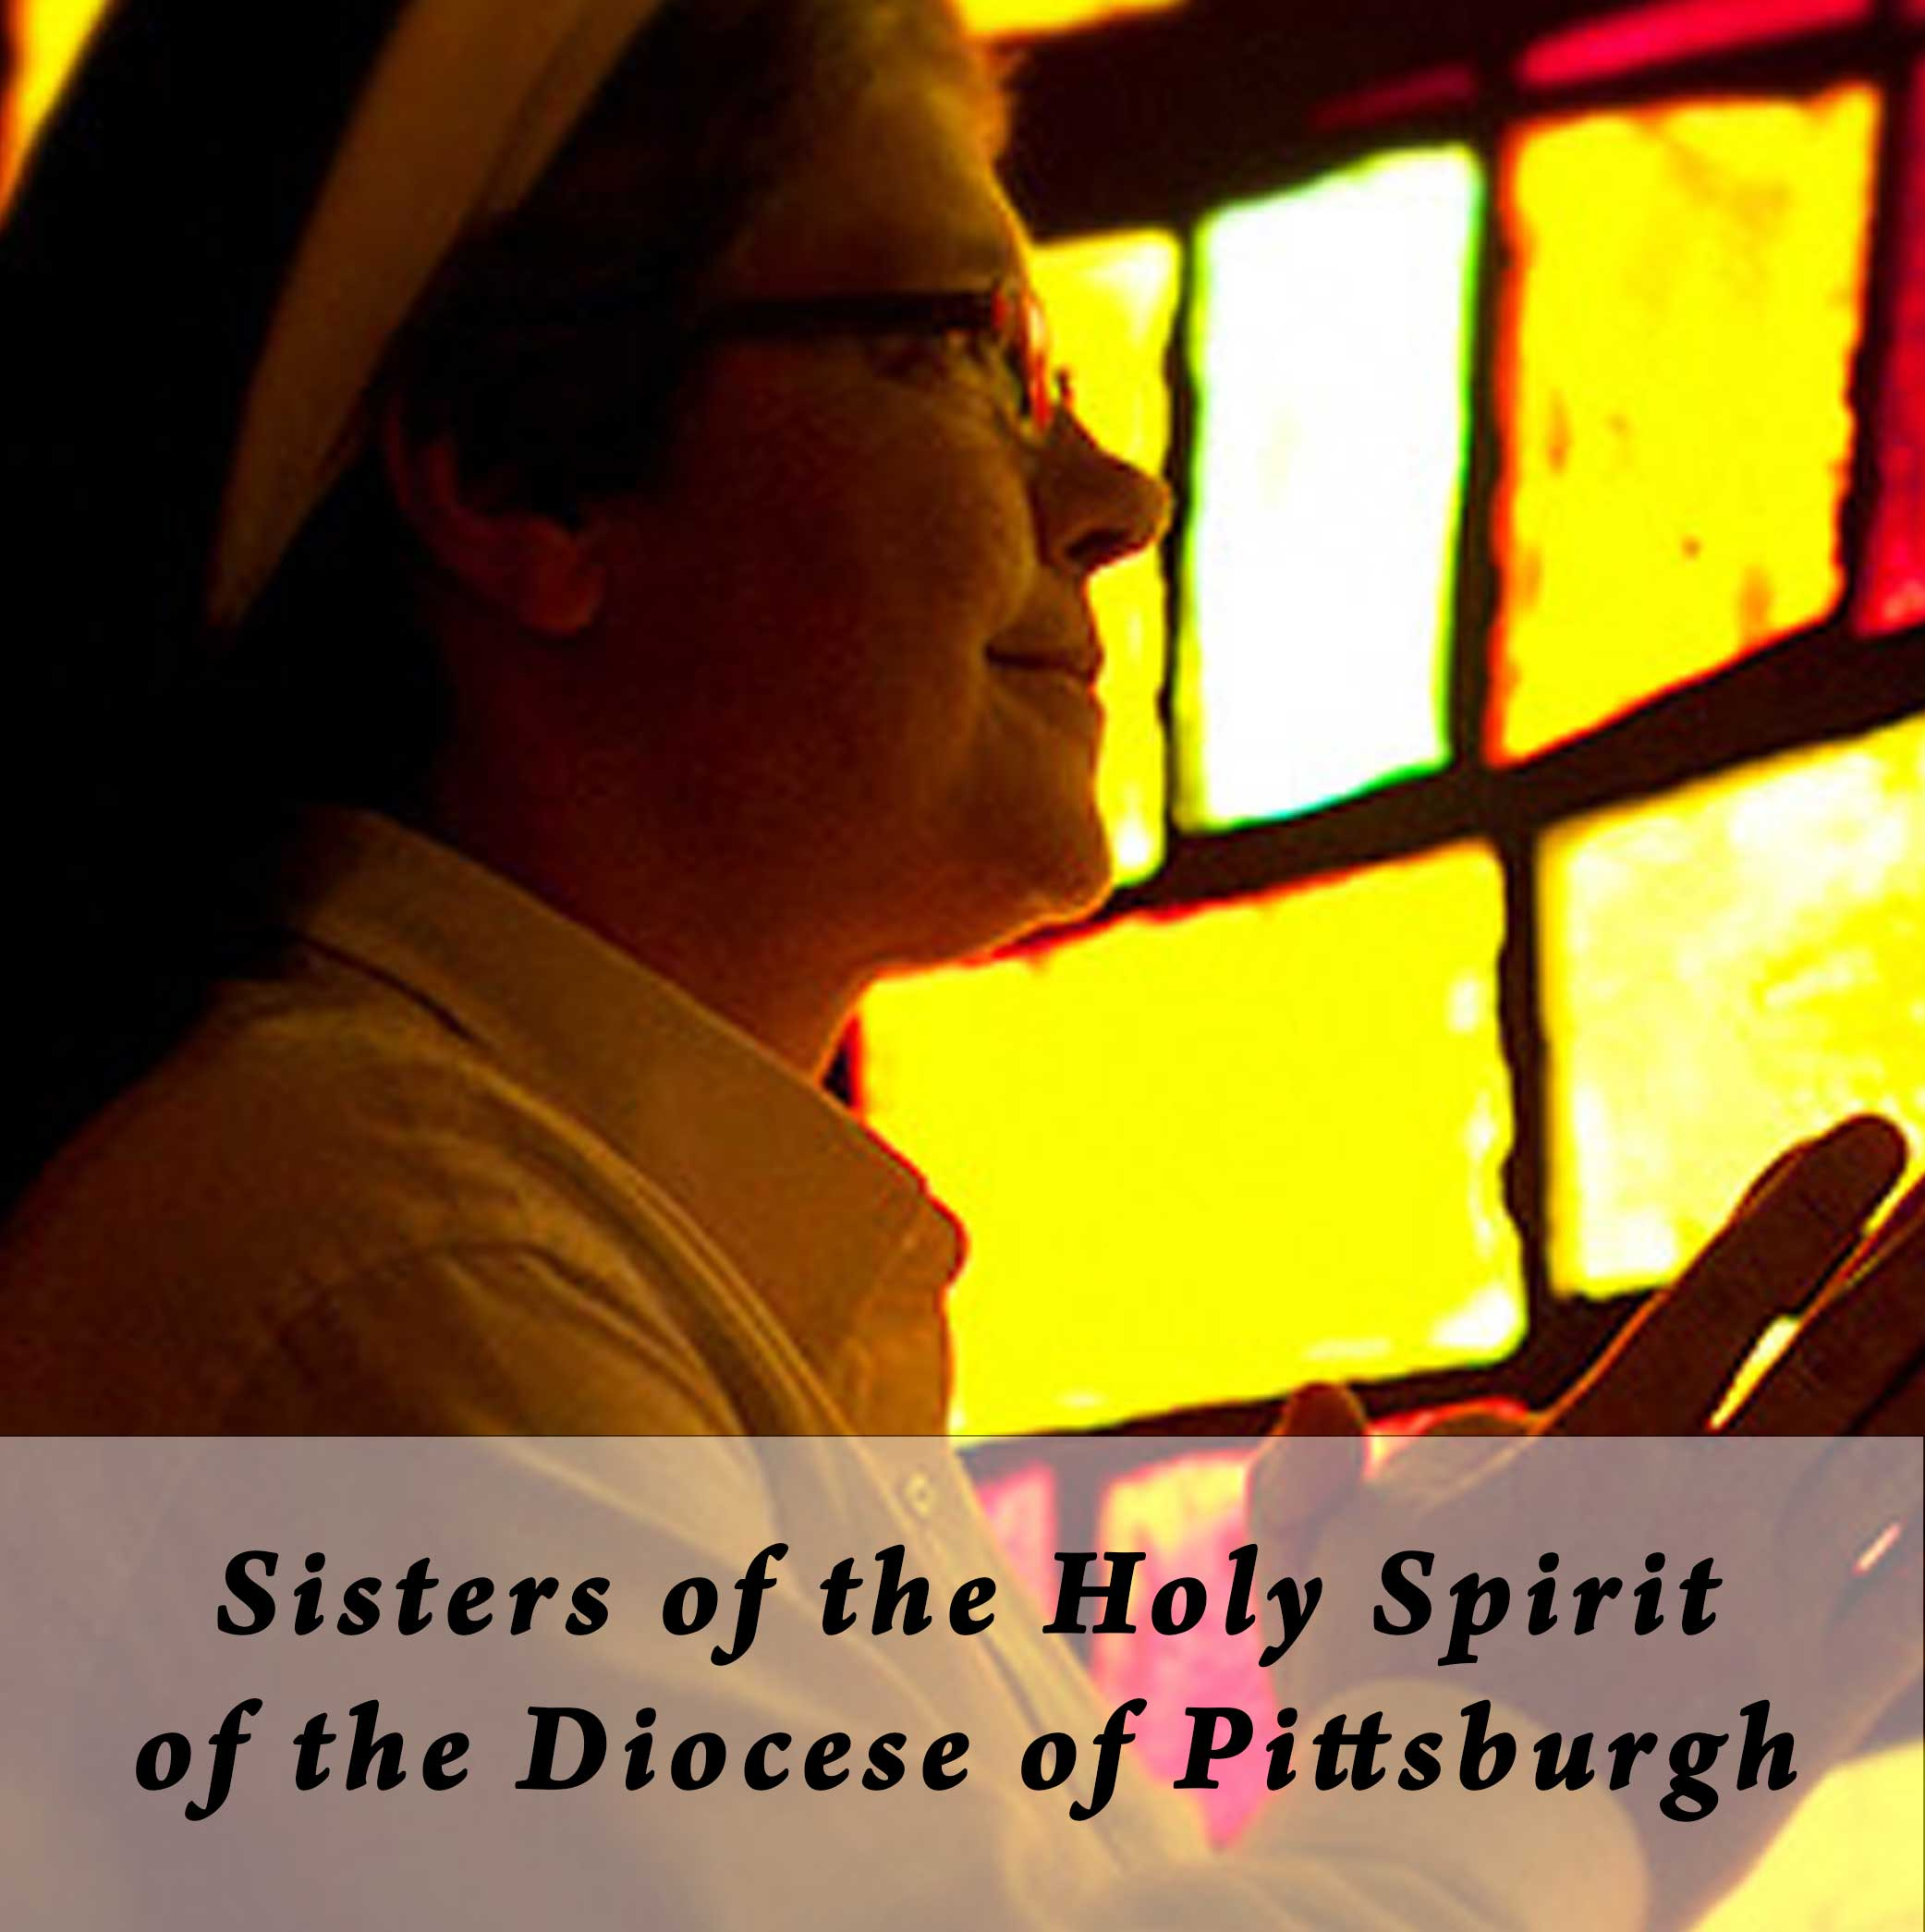 Sisters-of-the-Holy-Spirit.jpg